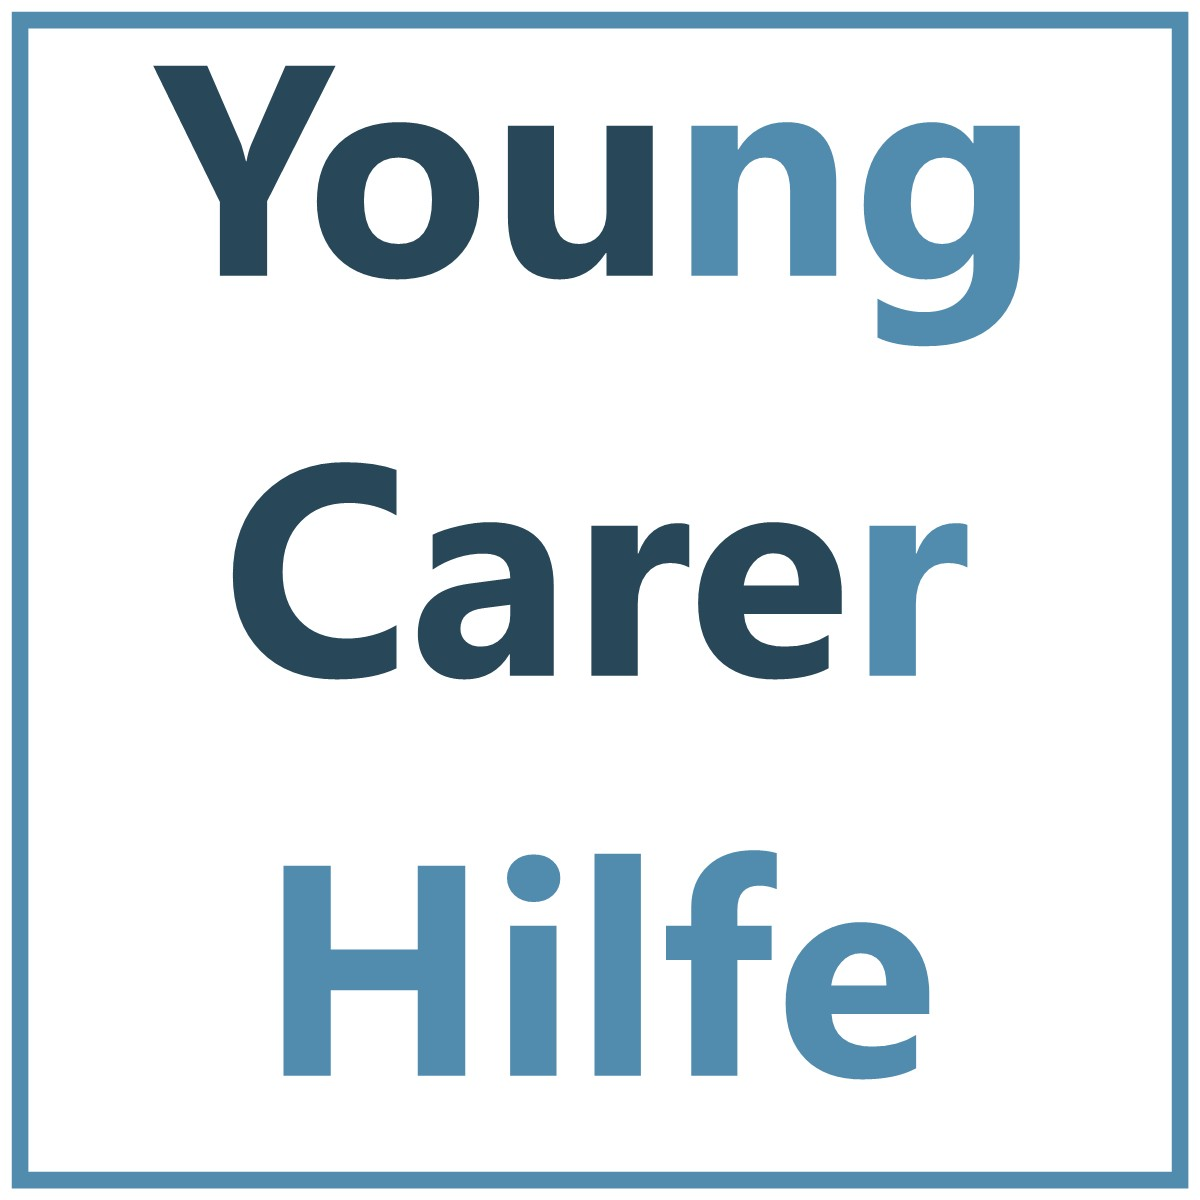 Young-carer, Youngcarer, Kinder Kranker Eltern, pflegende Kinder